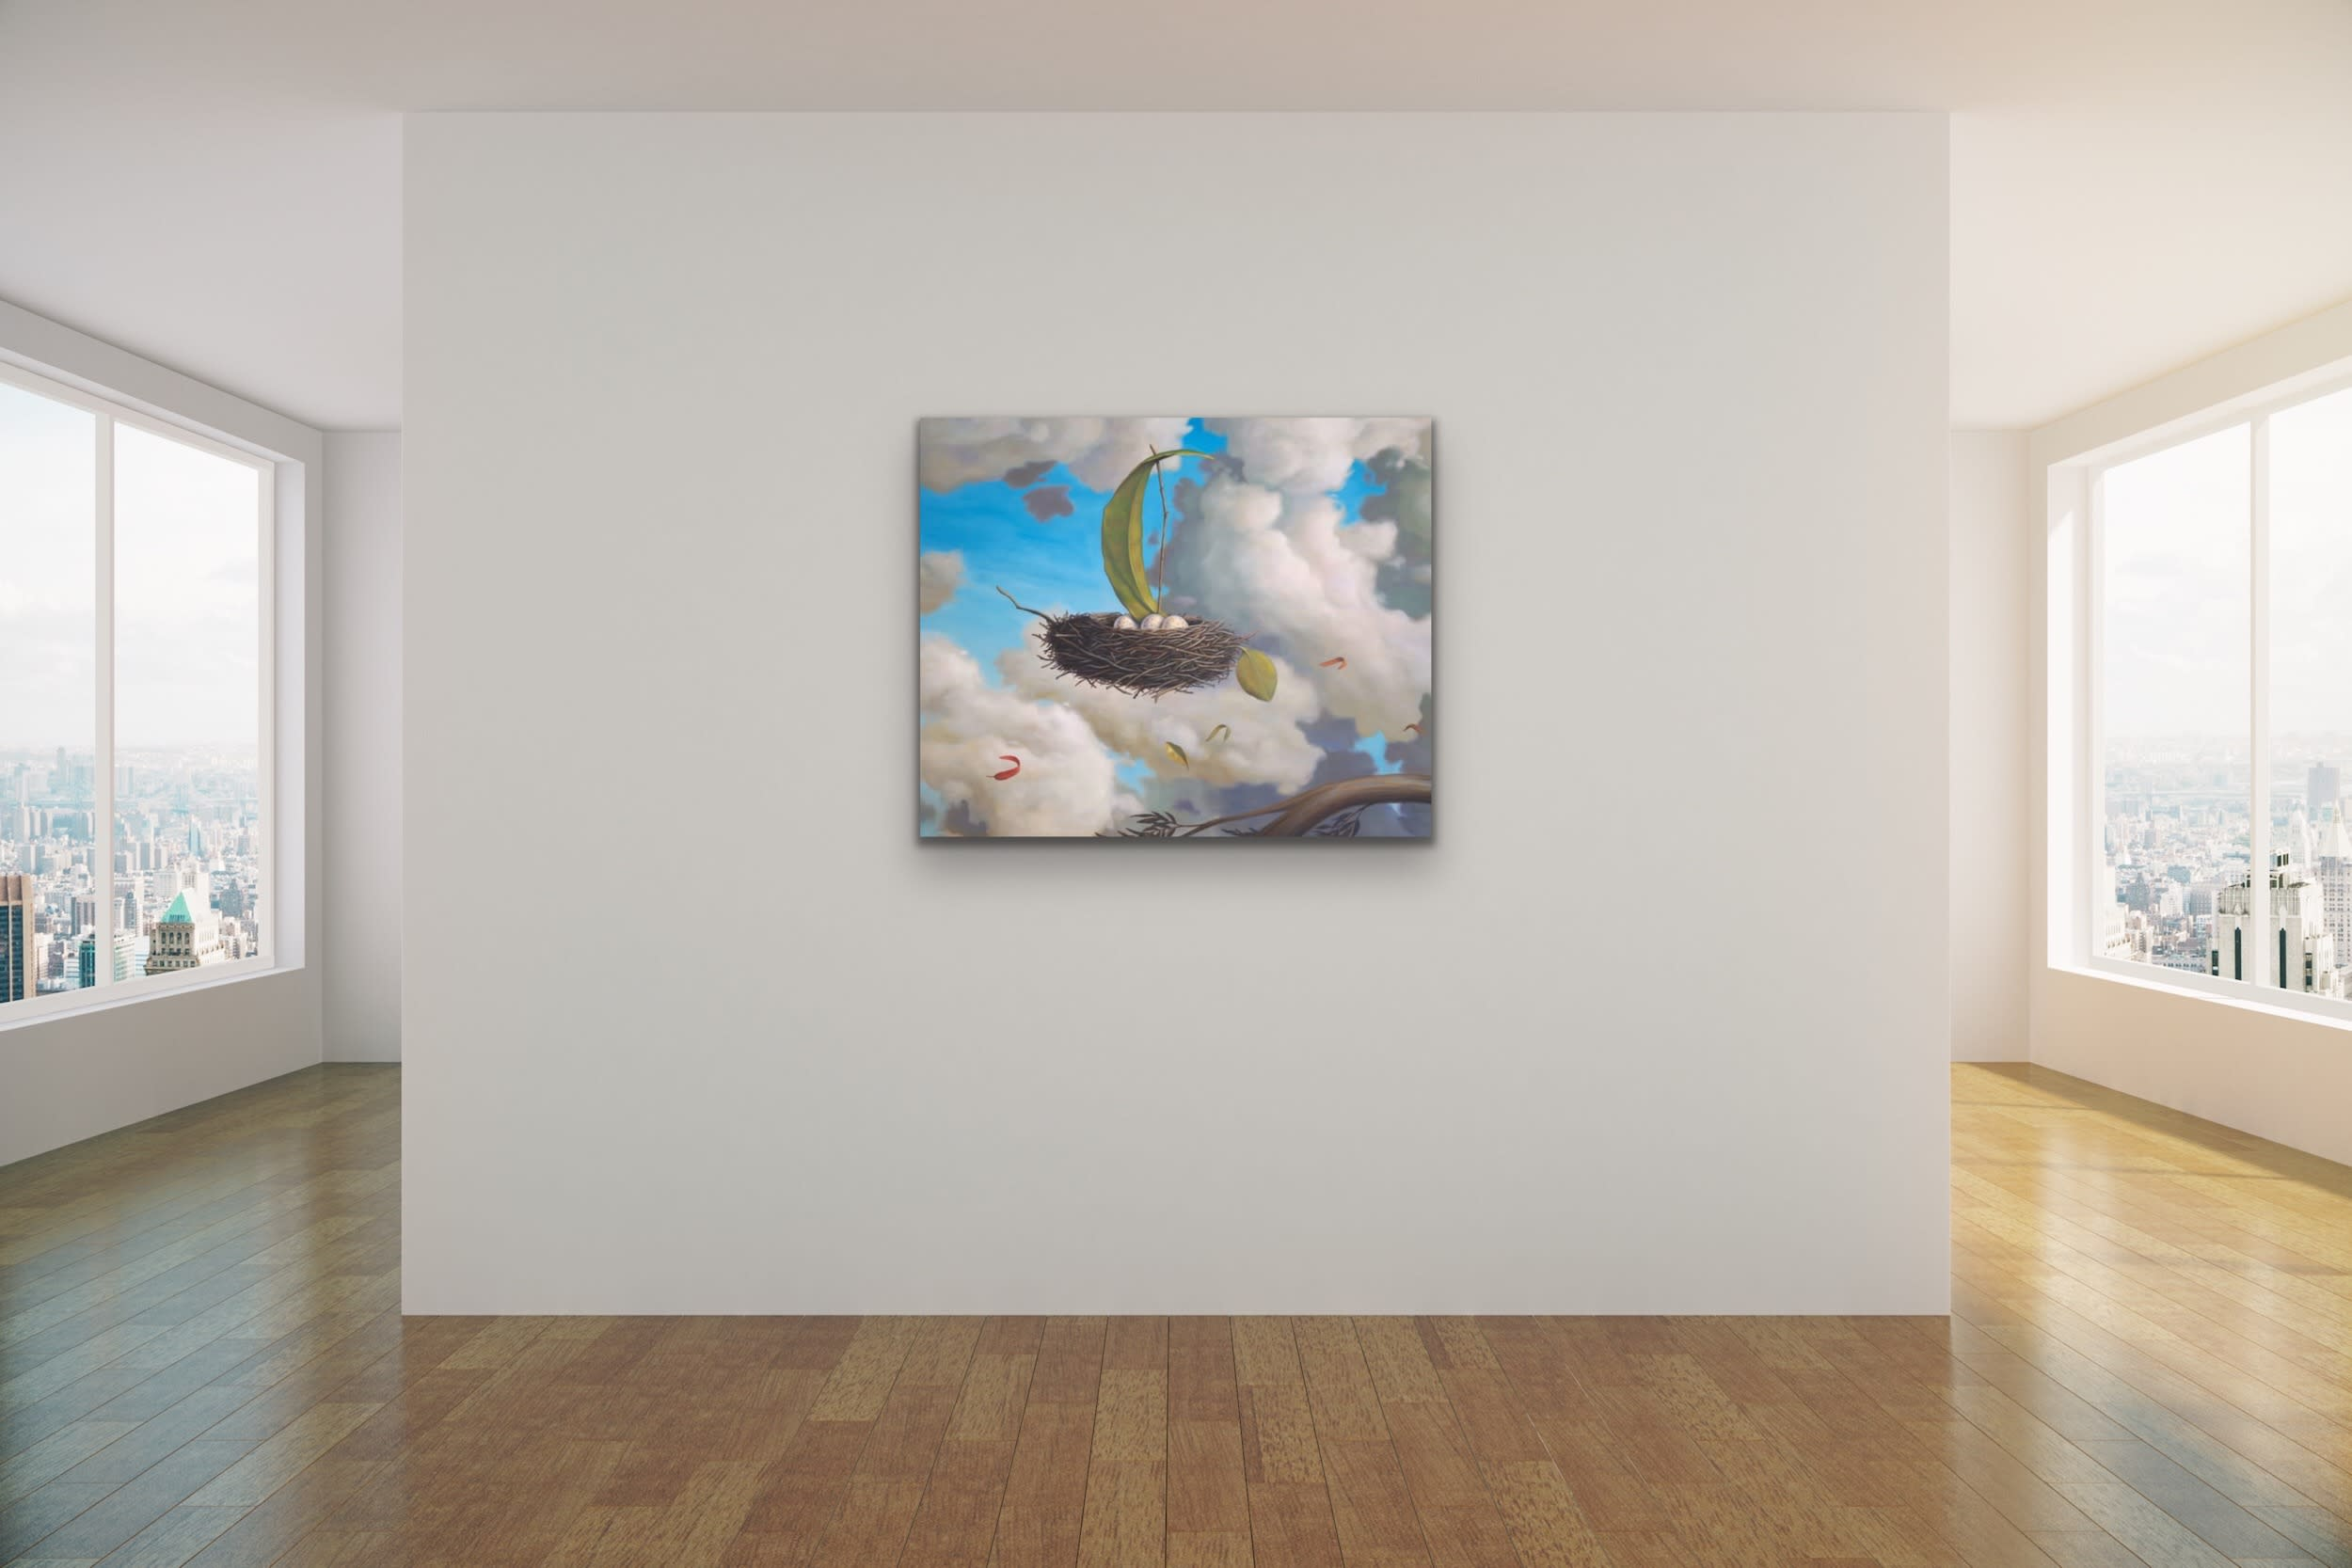 <div class='title'>           Paul Bond Magical Realism Poetry Serene Landscape Animals Nature Surreal Metaphorical Whimsical Fantasy Evo Art Maui Lahaina Front Street Art Gallery 6         </div>